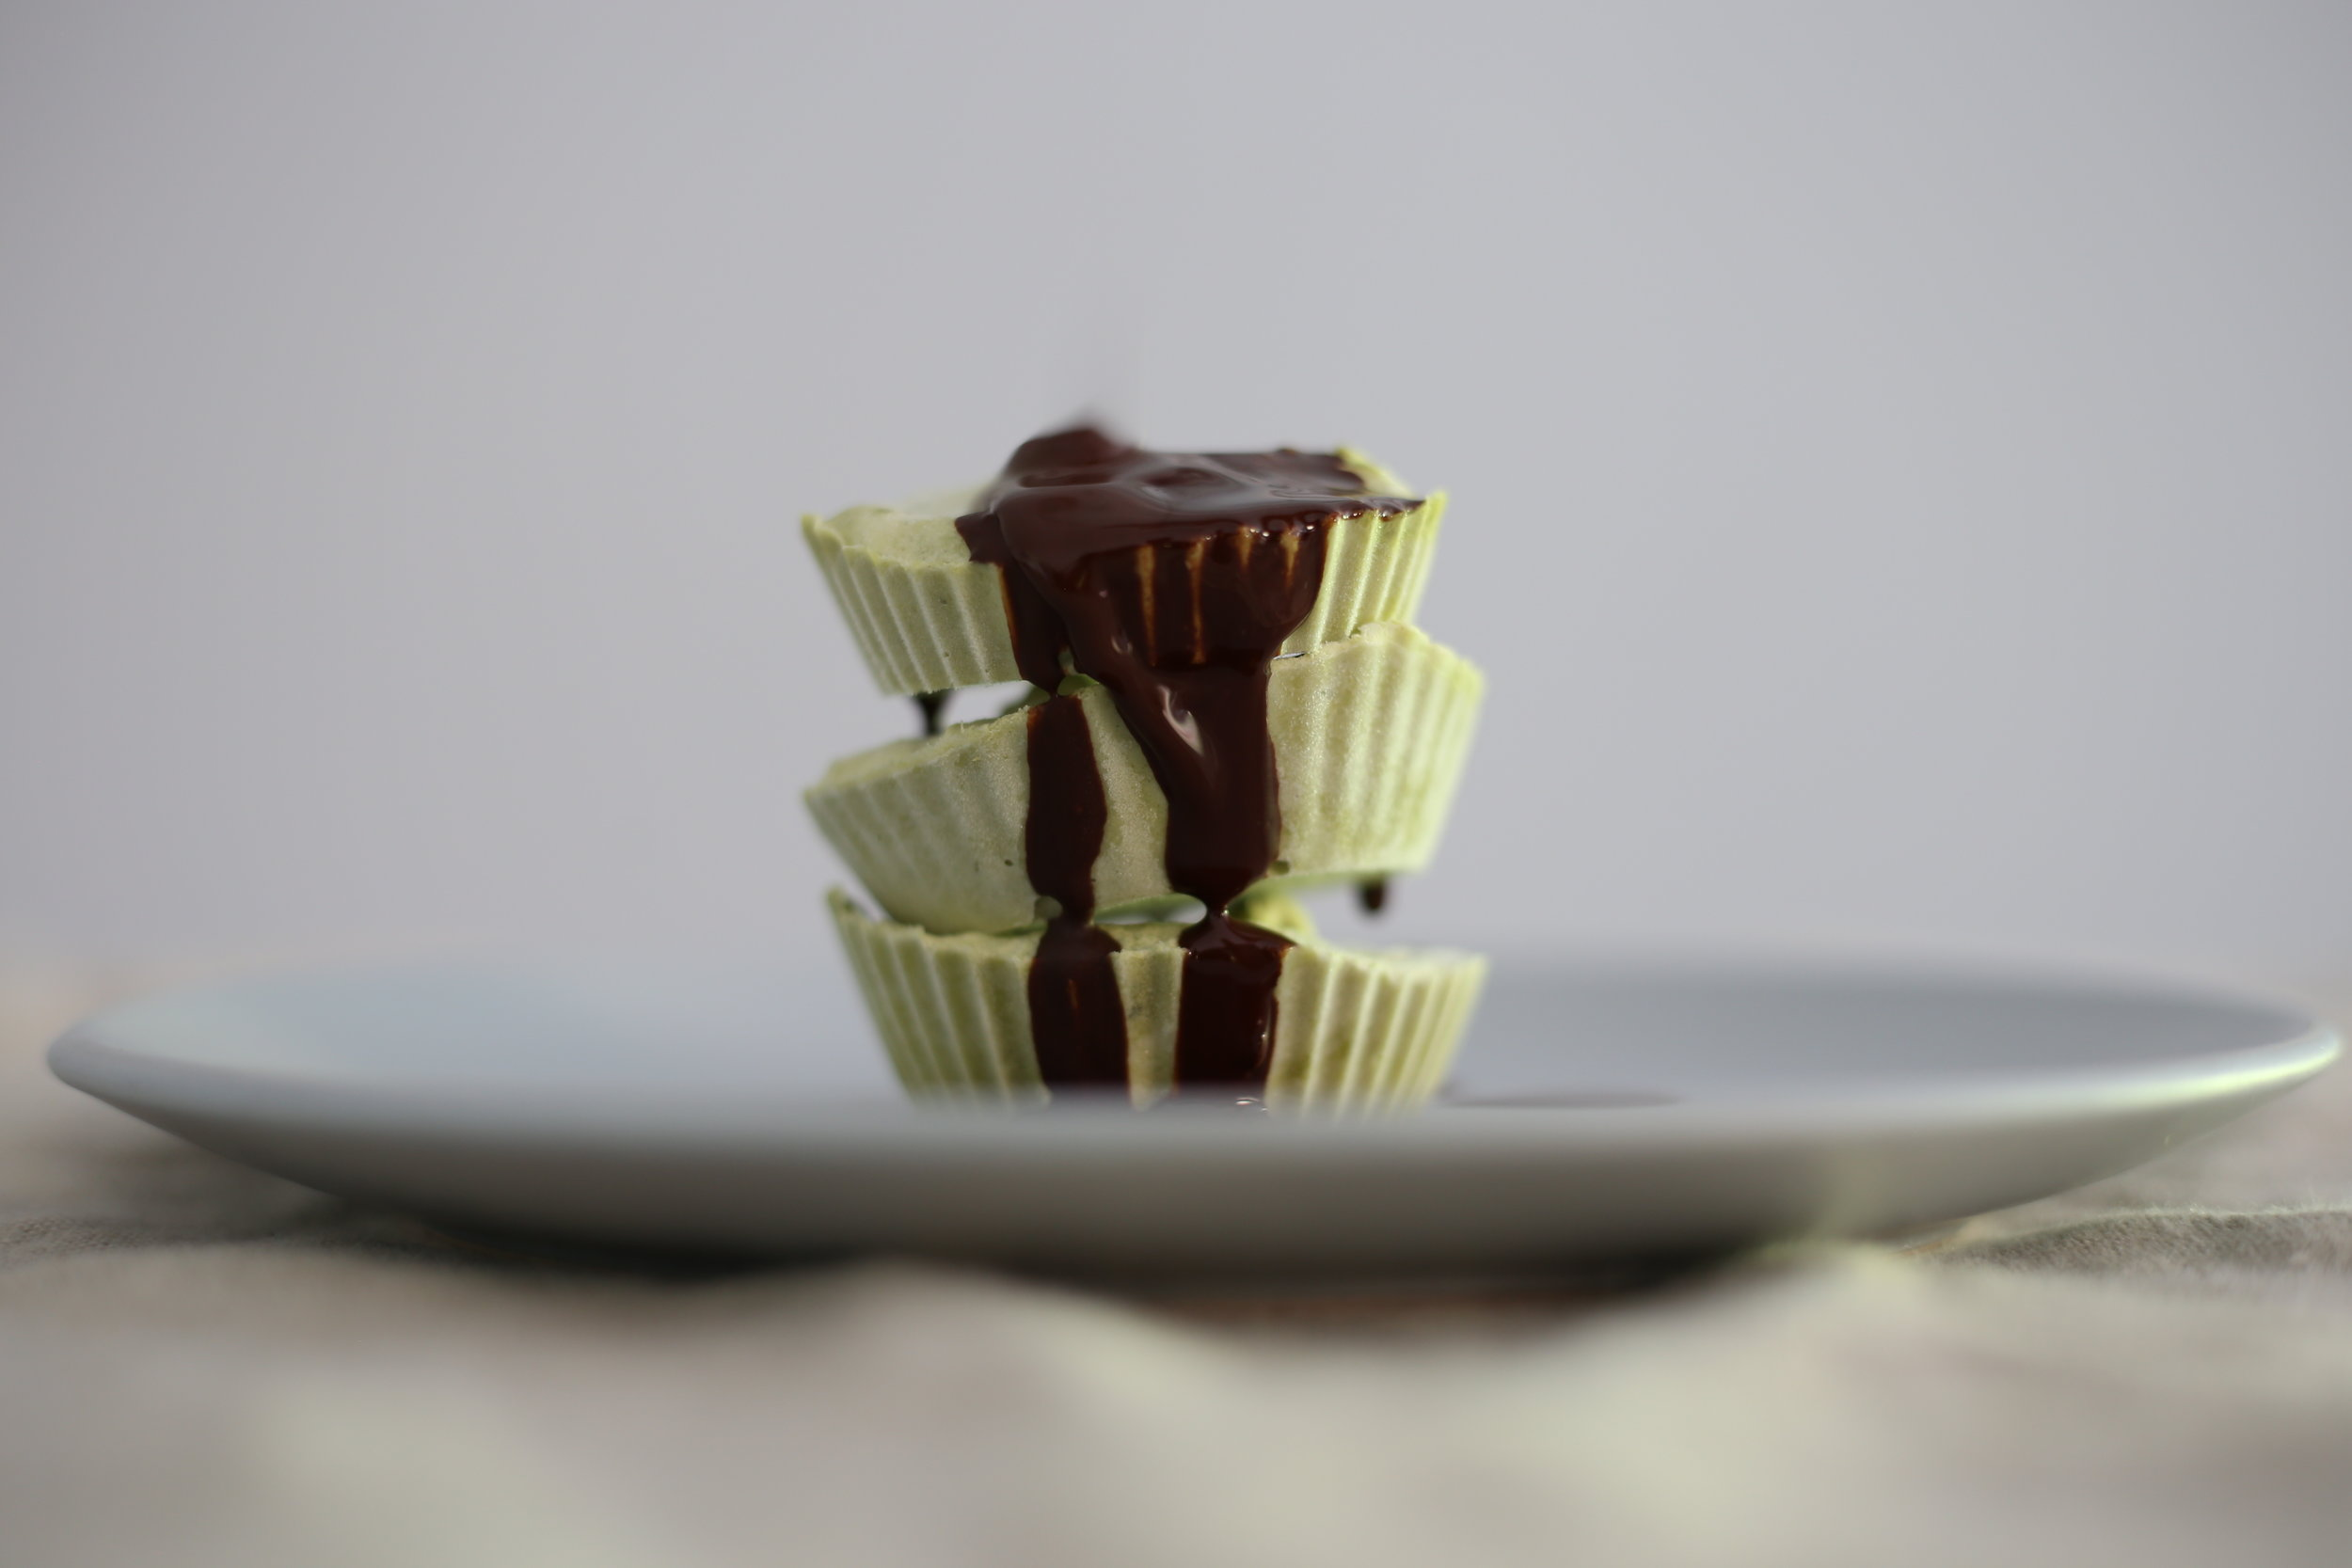 - These cups are a sugar free, vegan friendly and keto approved treat, using minimal ingredients and made simply by combining and freezing - no baking required!